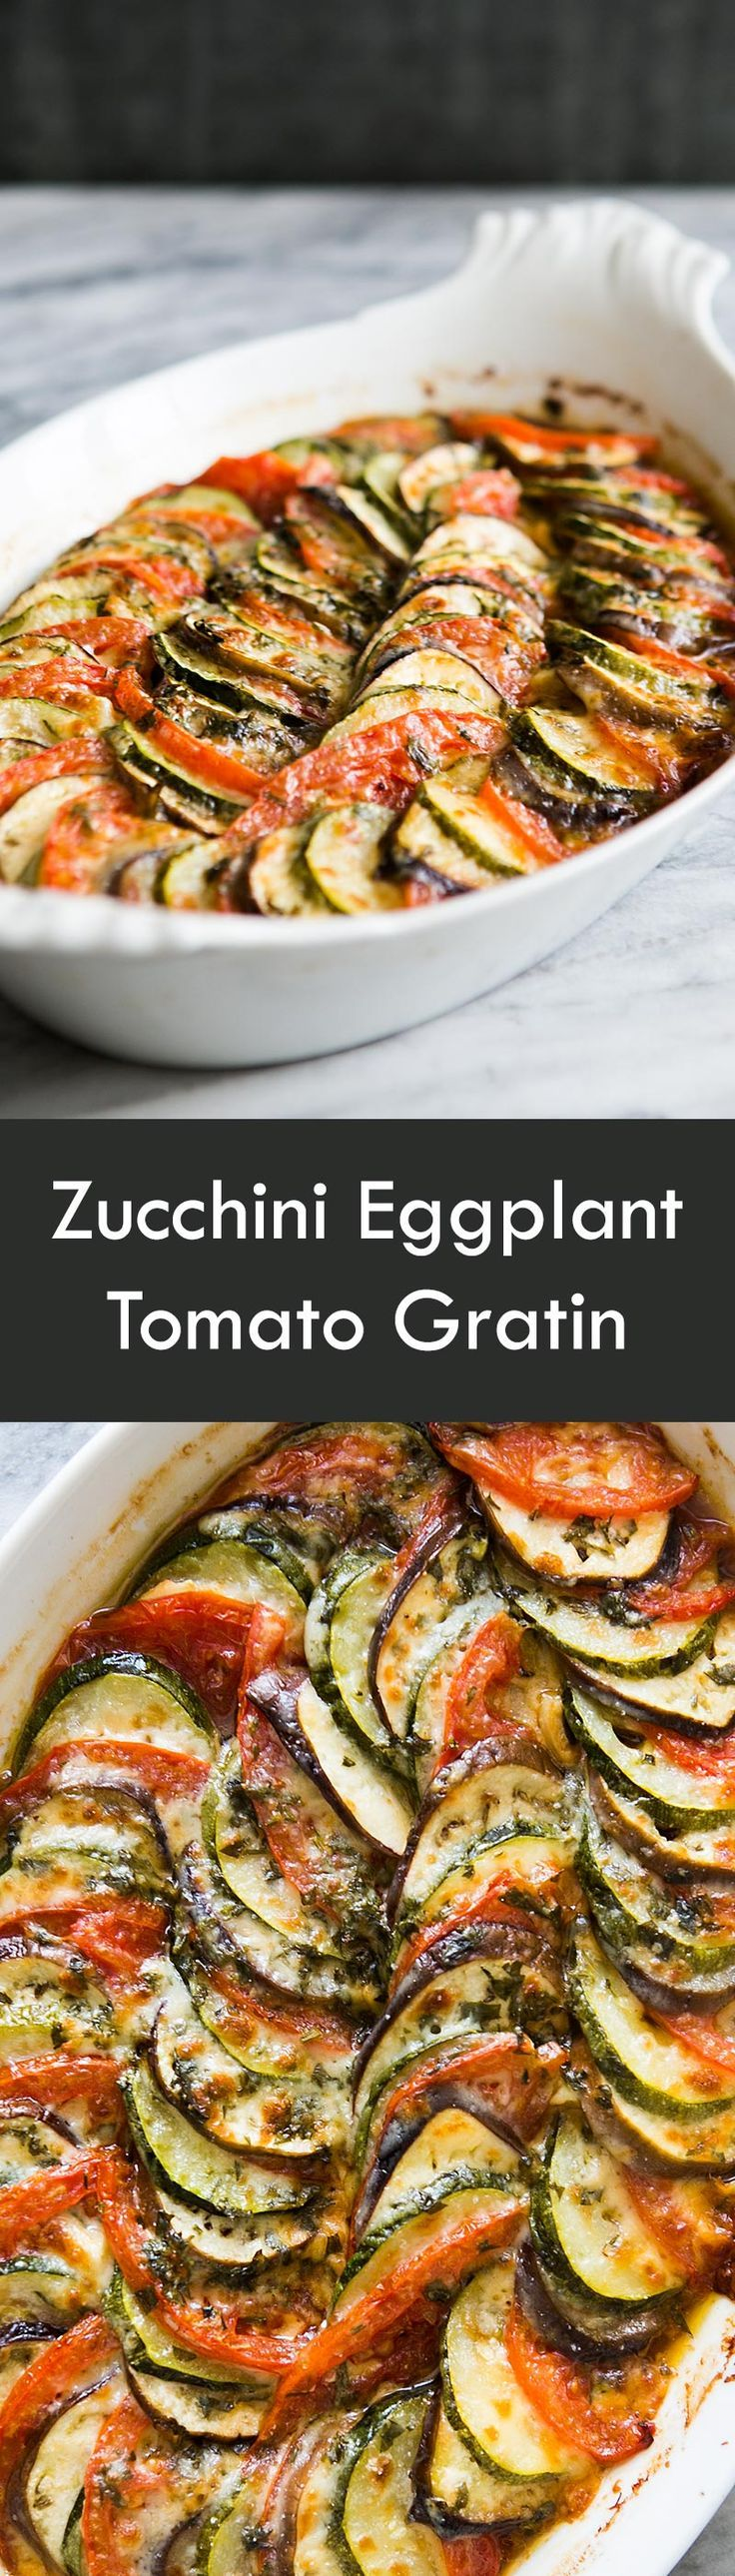 Summer zucchini, eggplant, and tomatoes, beautifully presented in a baked casserole gratin! On http://SimplyRecipes.com